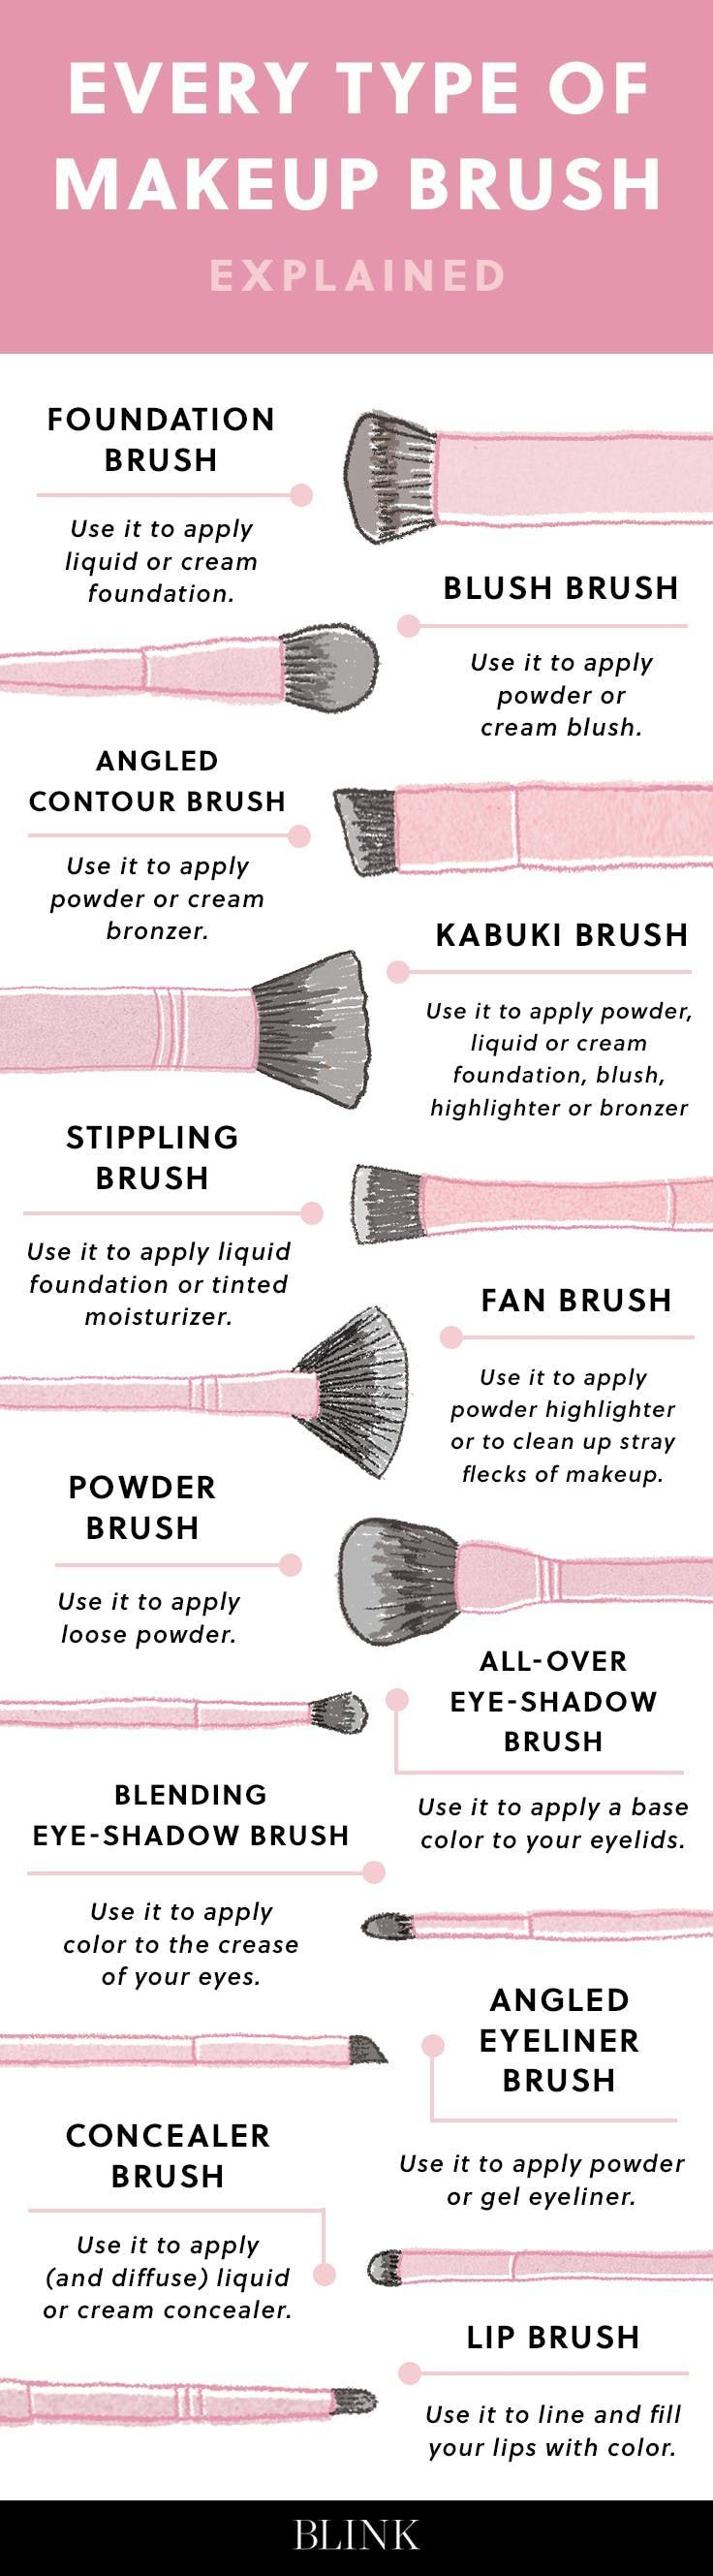 Save this infographic to get the explanation of every type of makeup brush ever.